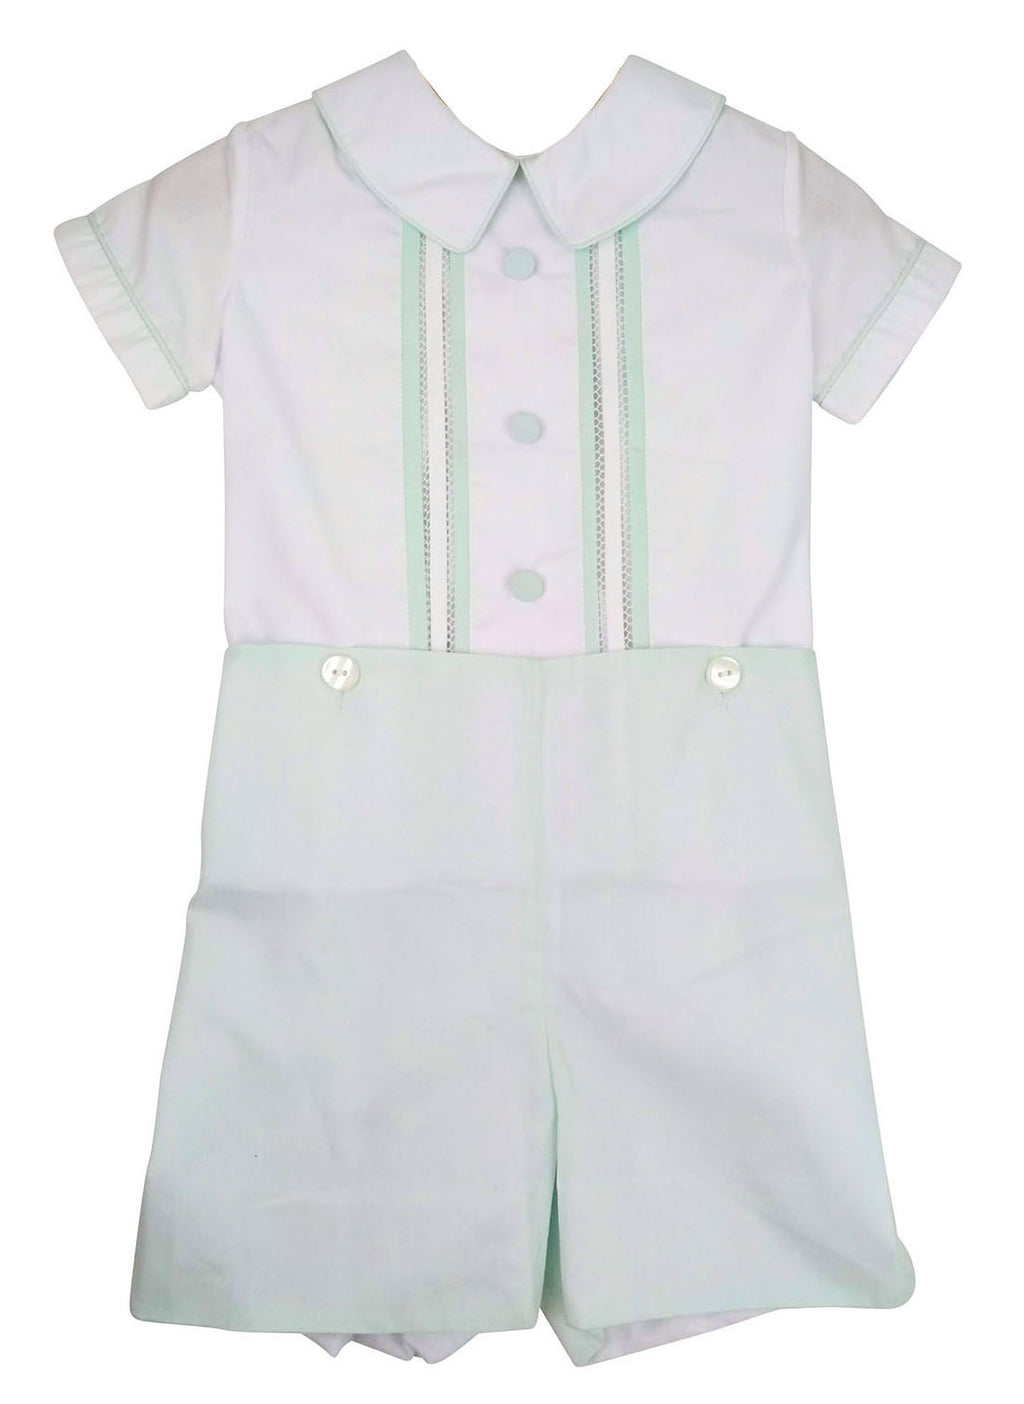 Mint button on fagotting stitched shirt - Little Threads Inc. Children's Clothing